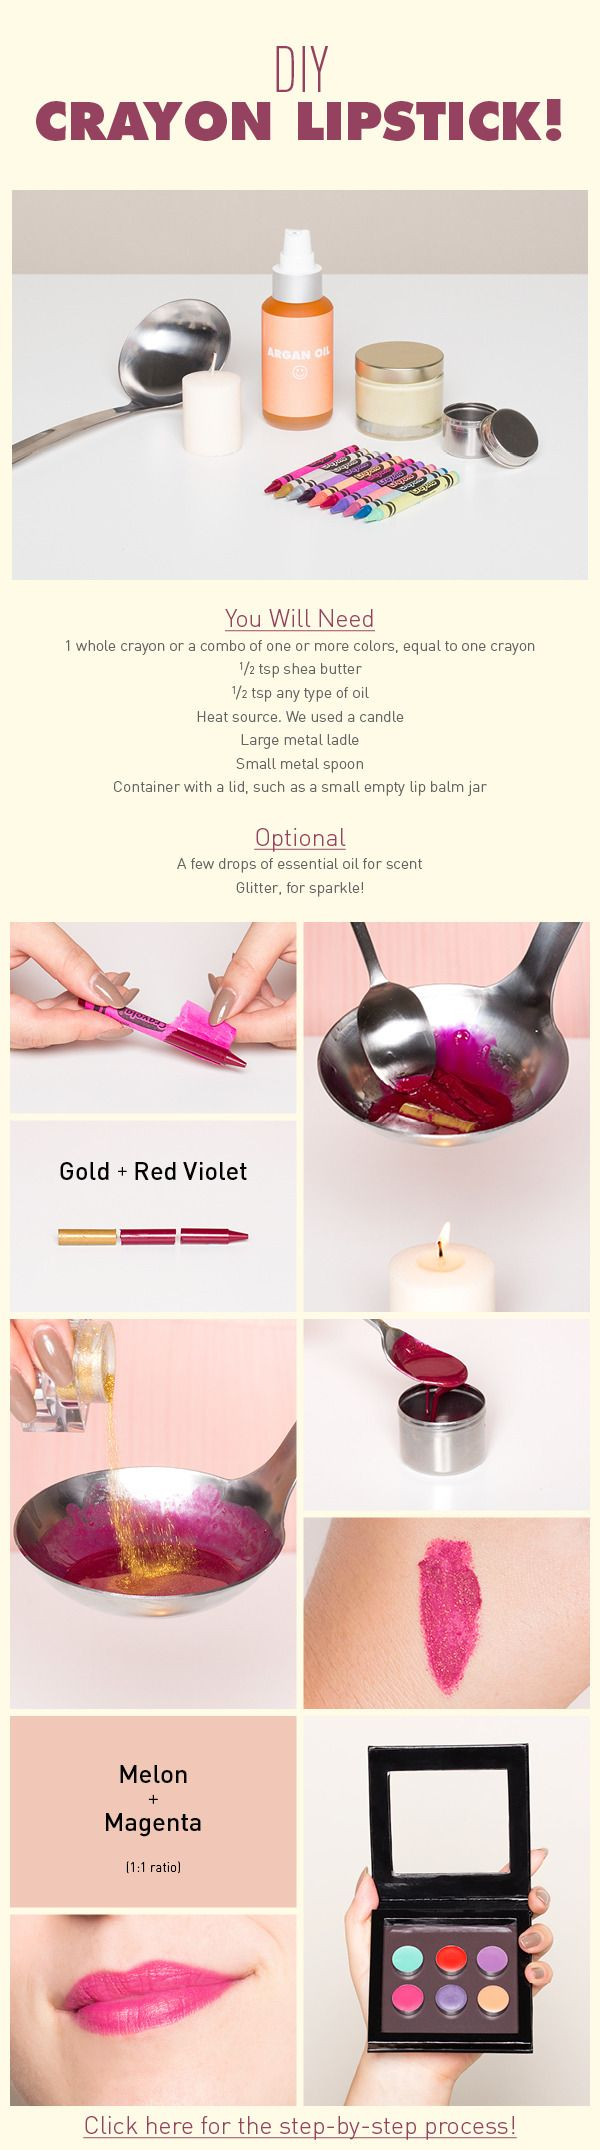 """7 DIY Crayon Lipsticks to Make Now"" uhhhh, what? Do I even dare try?"